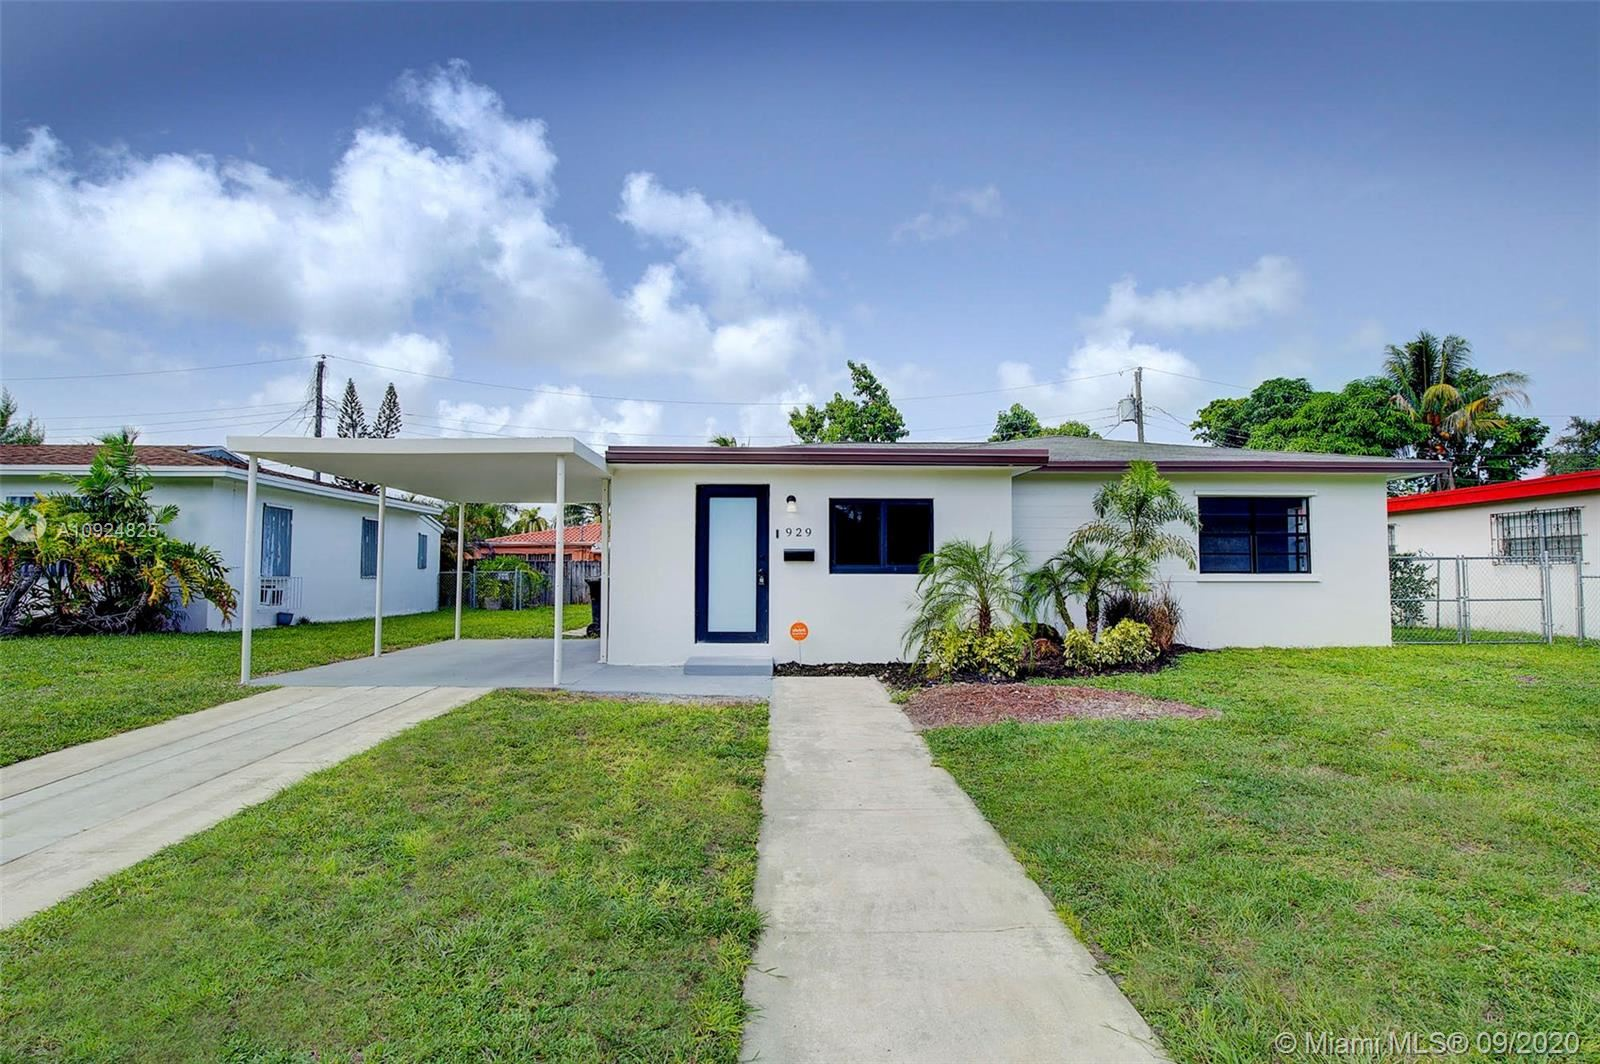 929 NE 163rd St, North Miami Beach, FL 33162 - #: A10924825